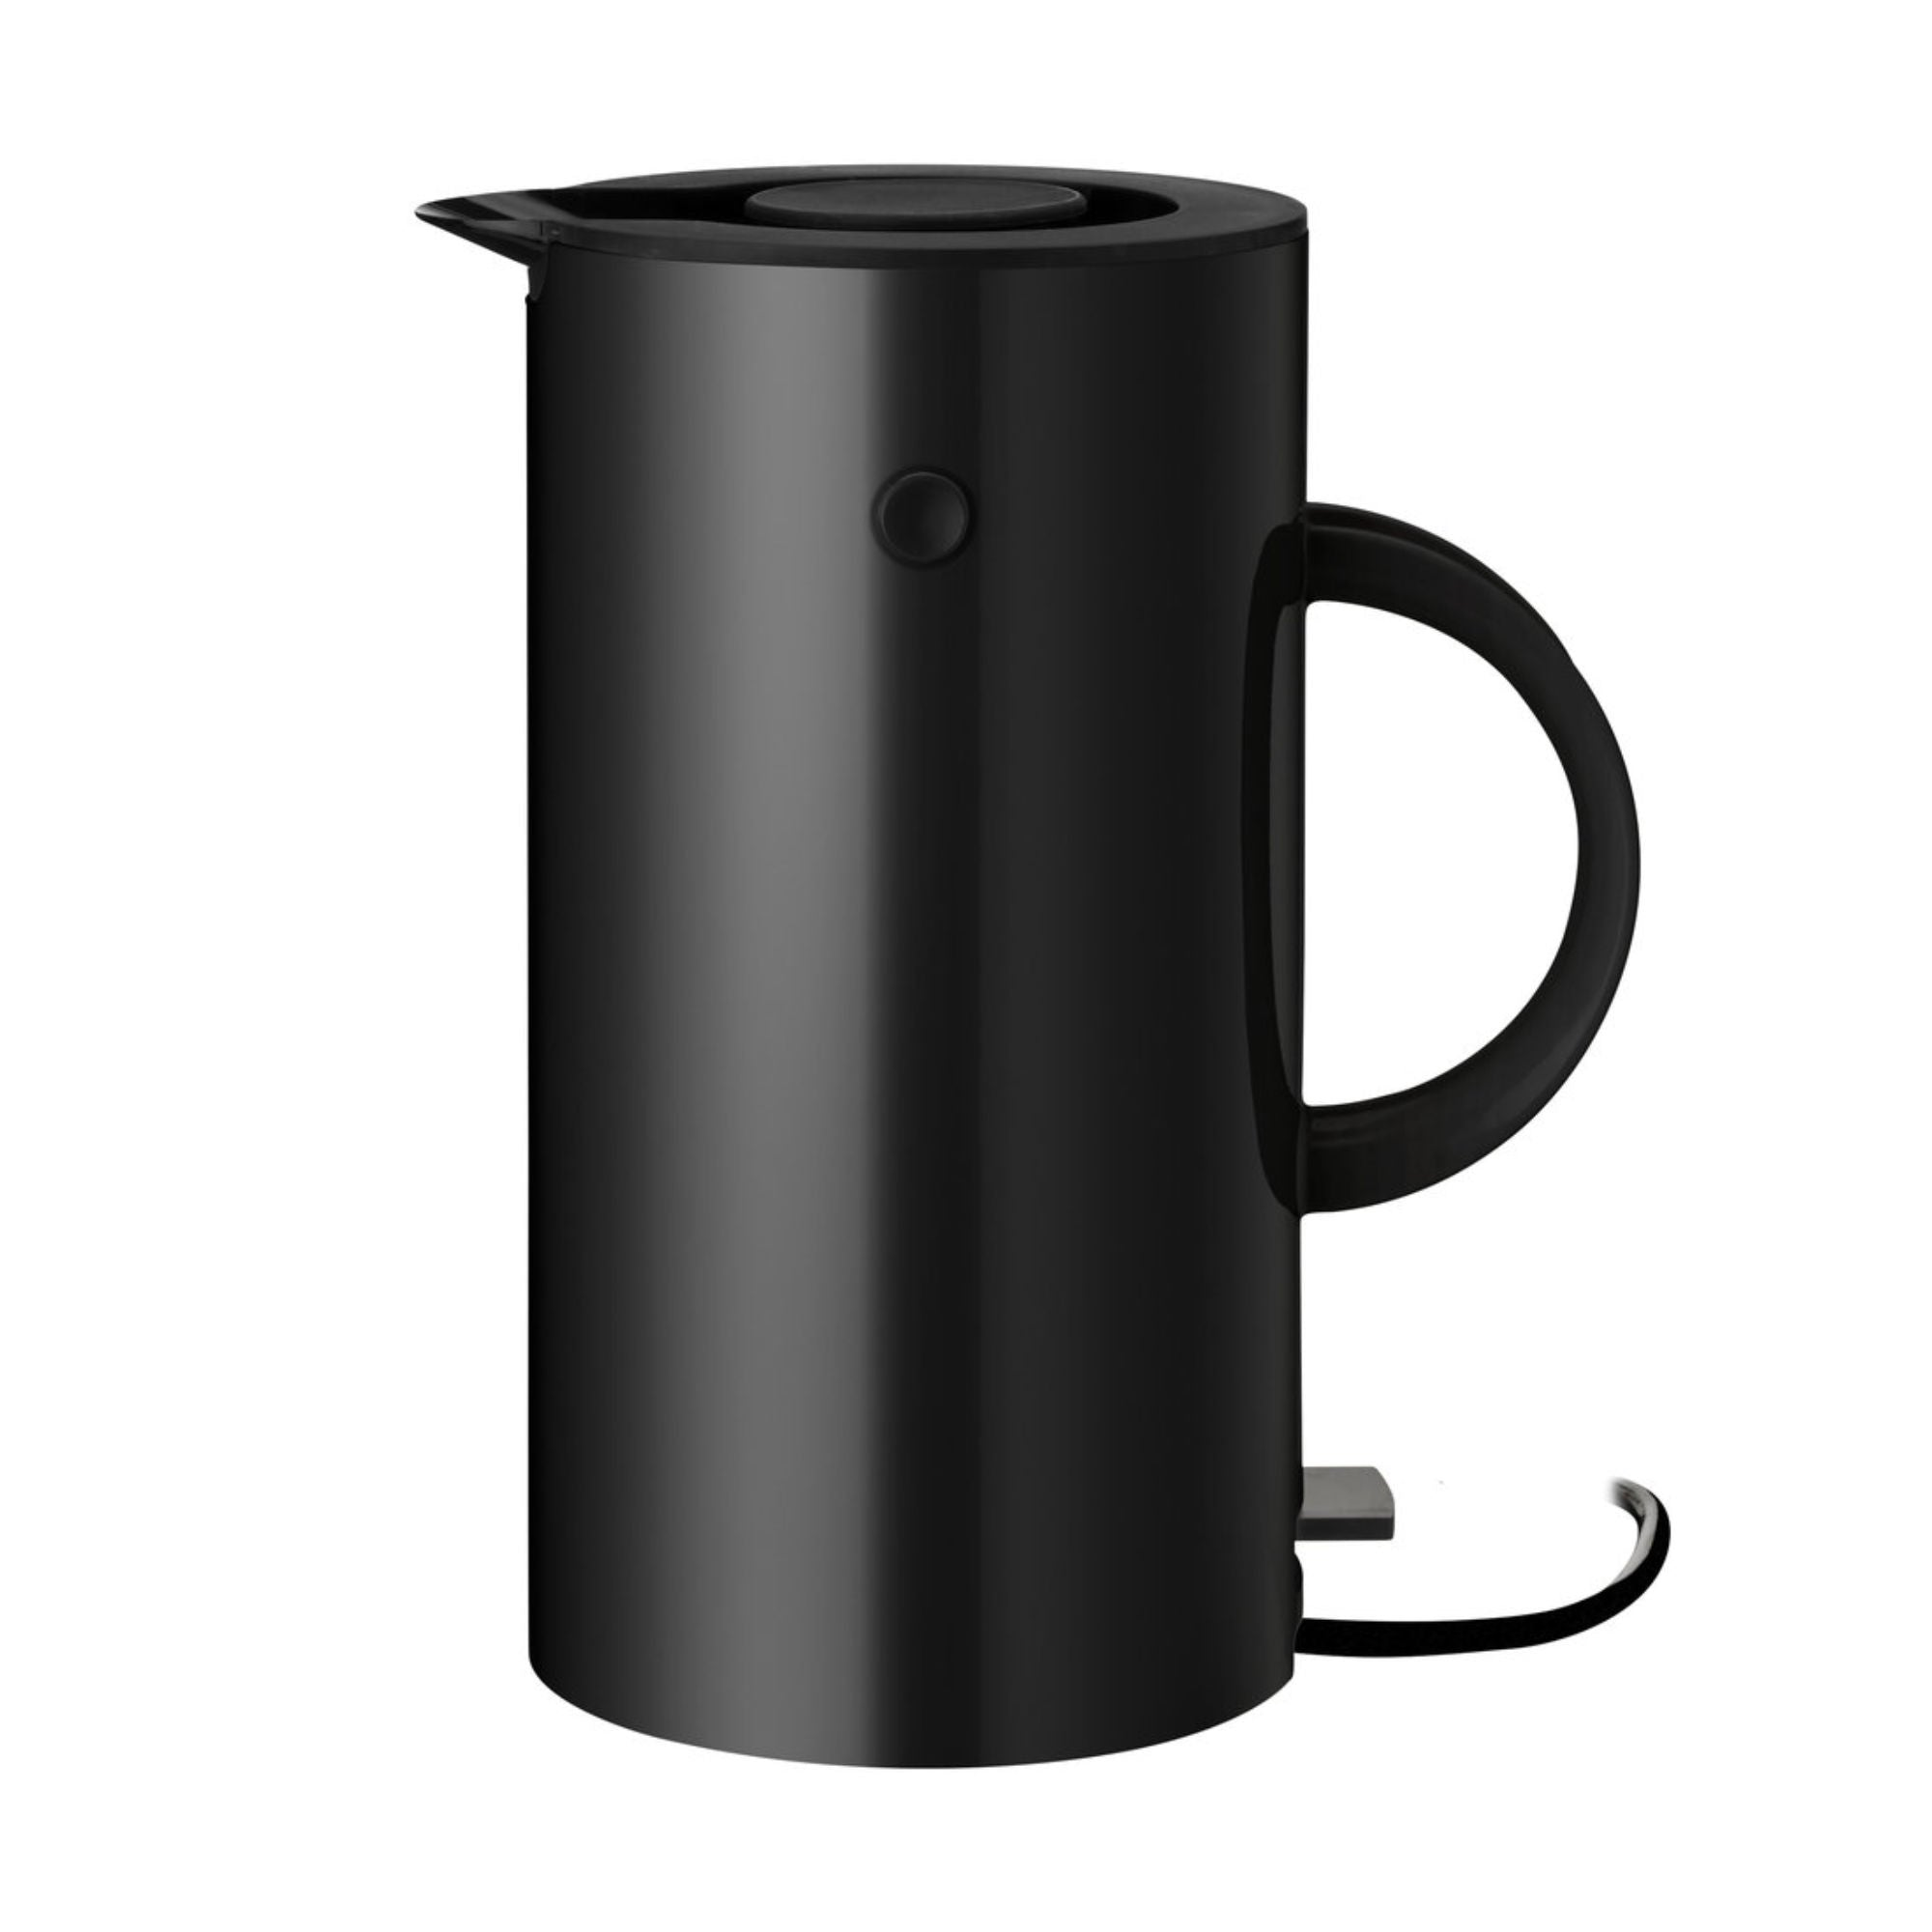 Stelton EM77 Electric Kettle 1.5L , Black